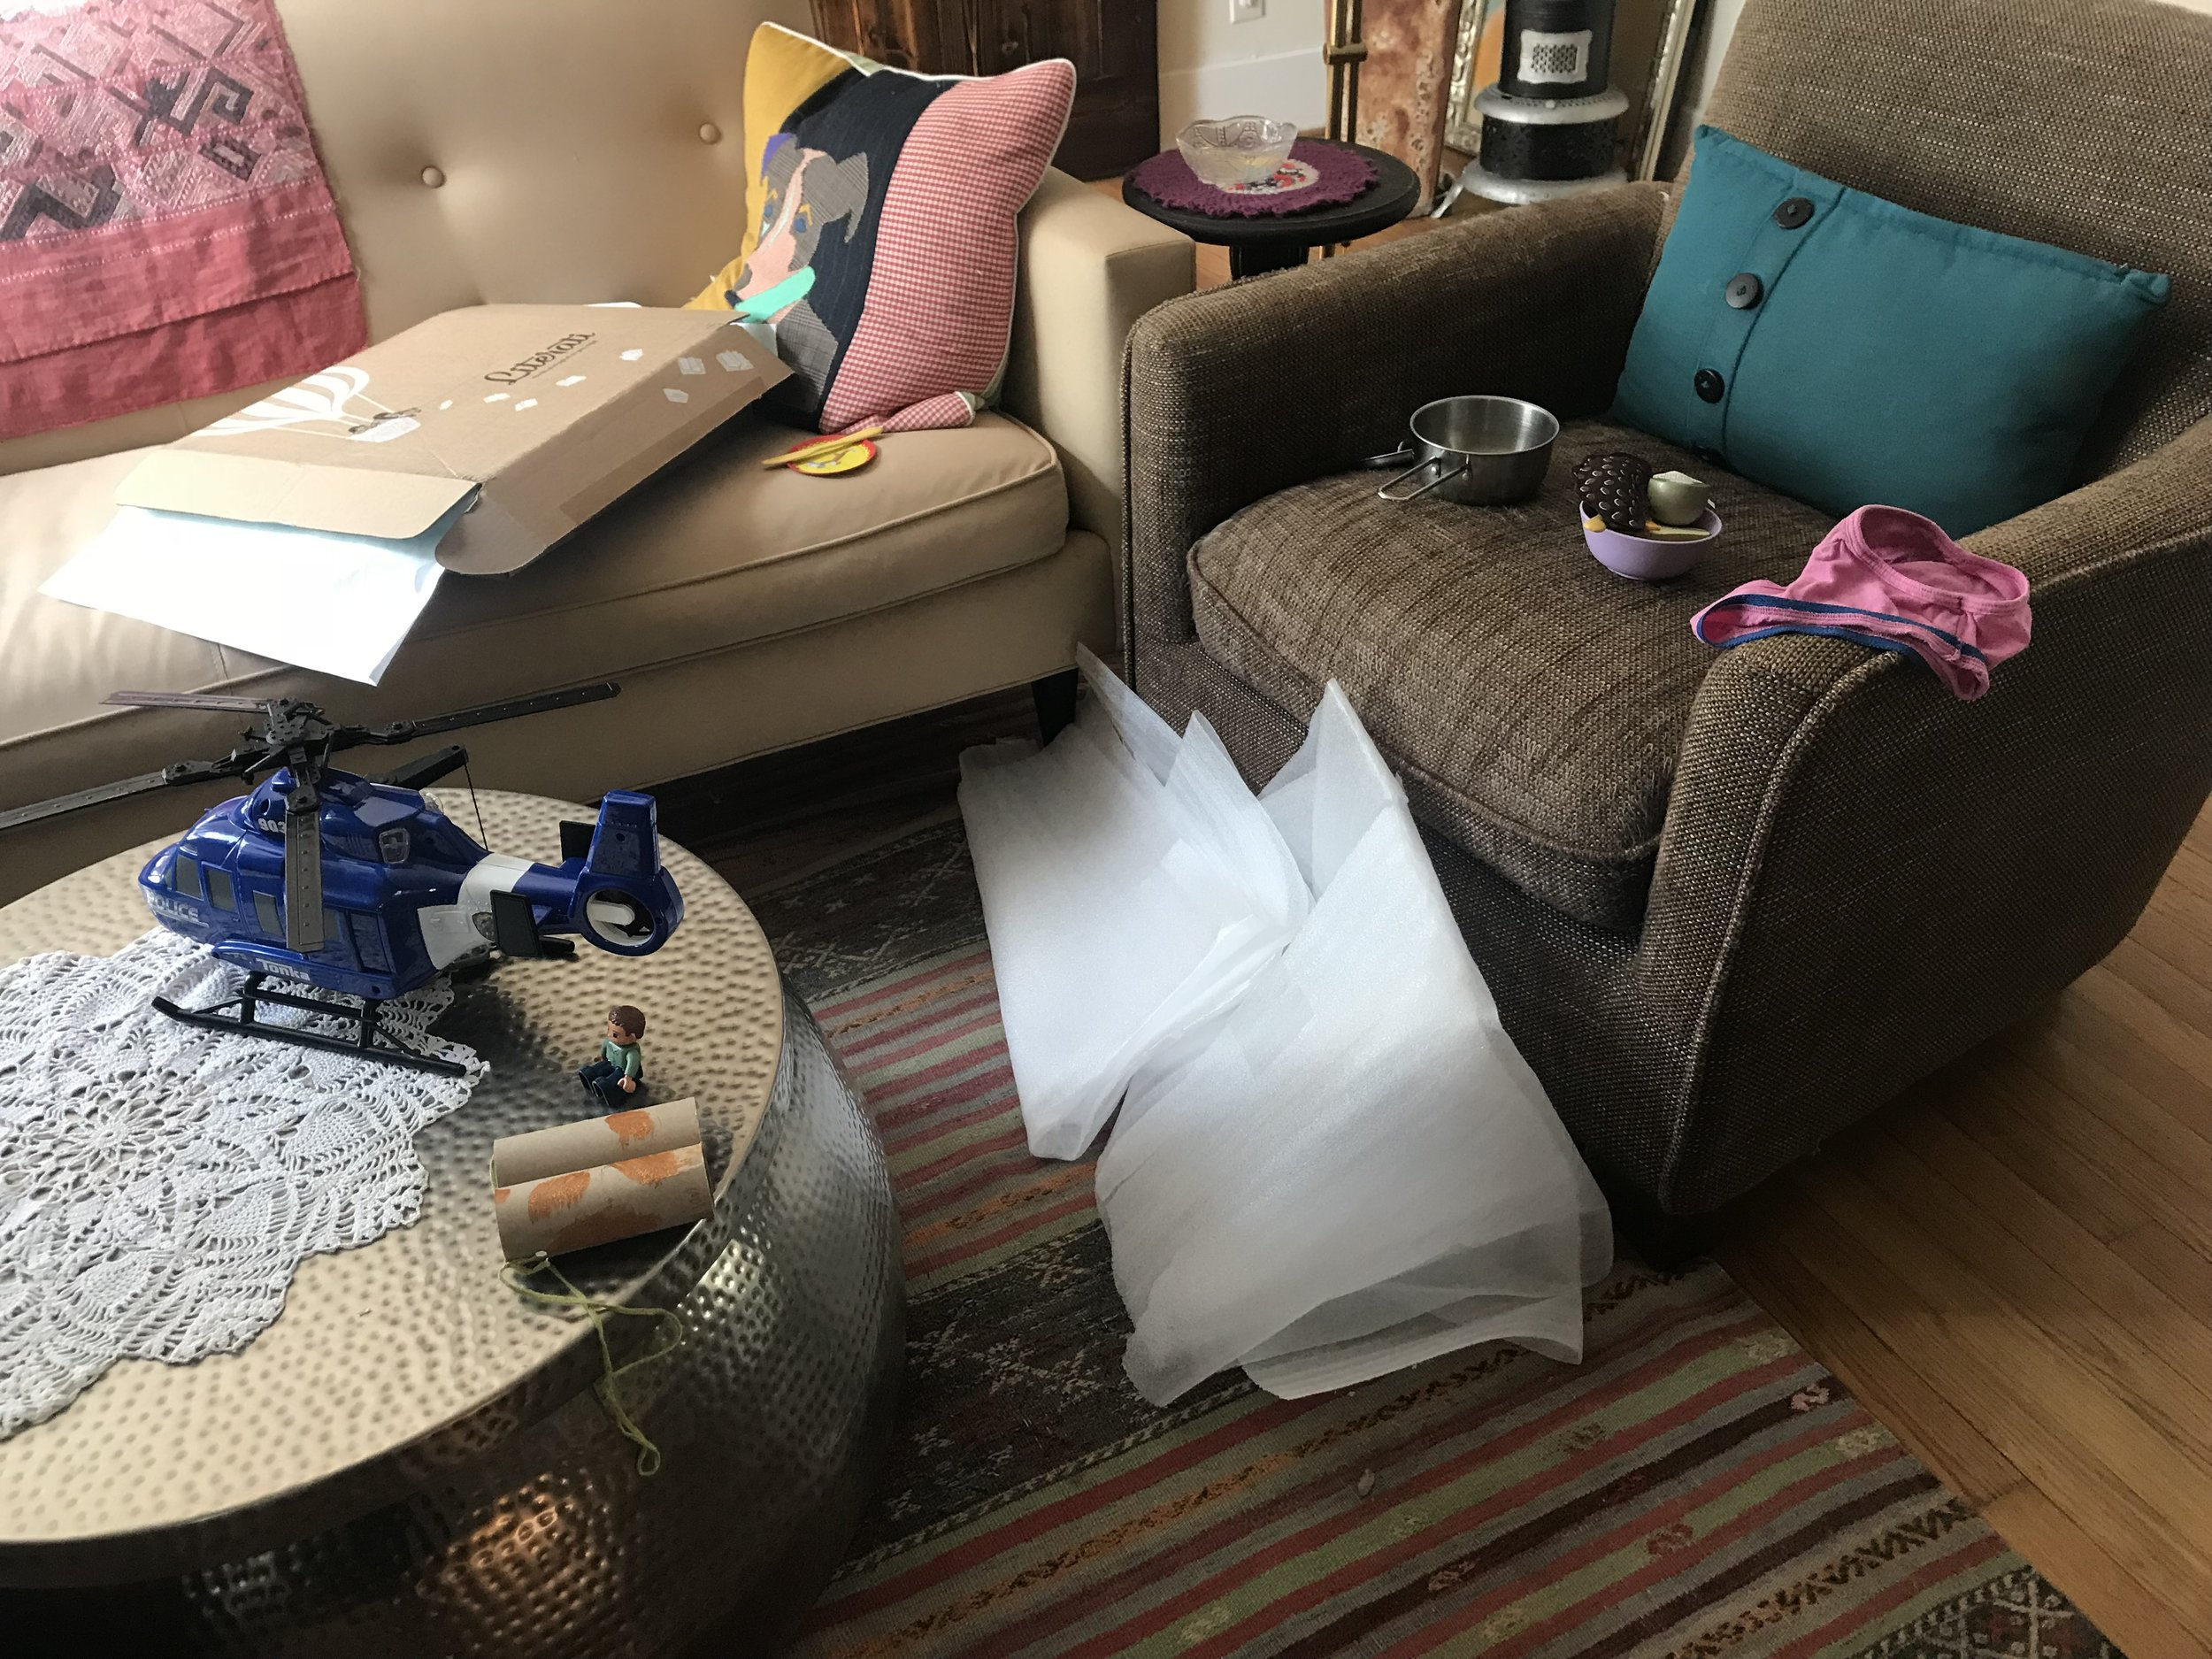 austin family photographer real life house mess